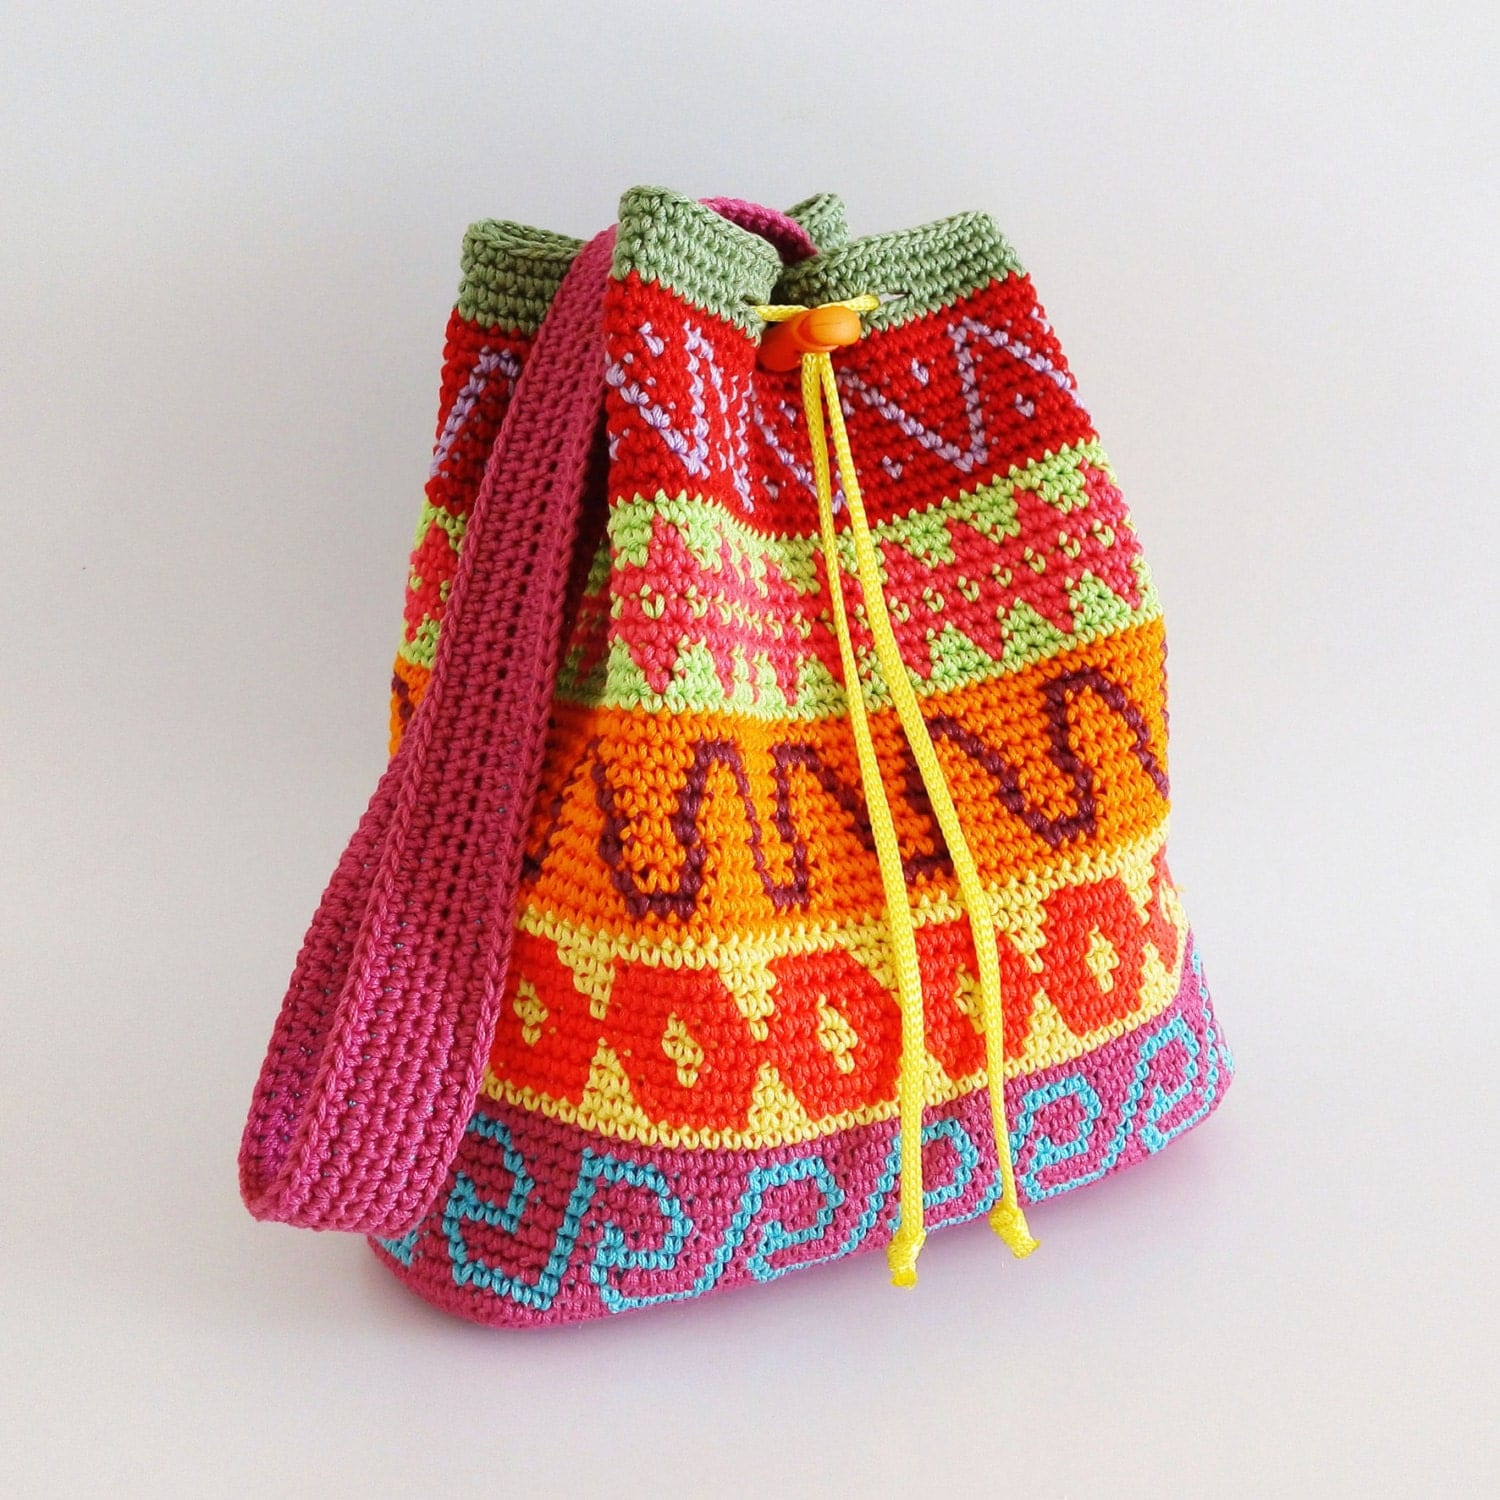 How To Crochet Wayuu Bag | Solution for how to for dummies